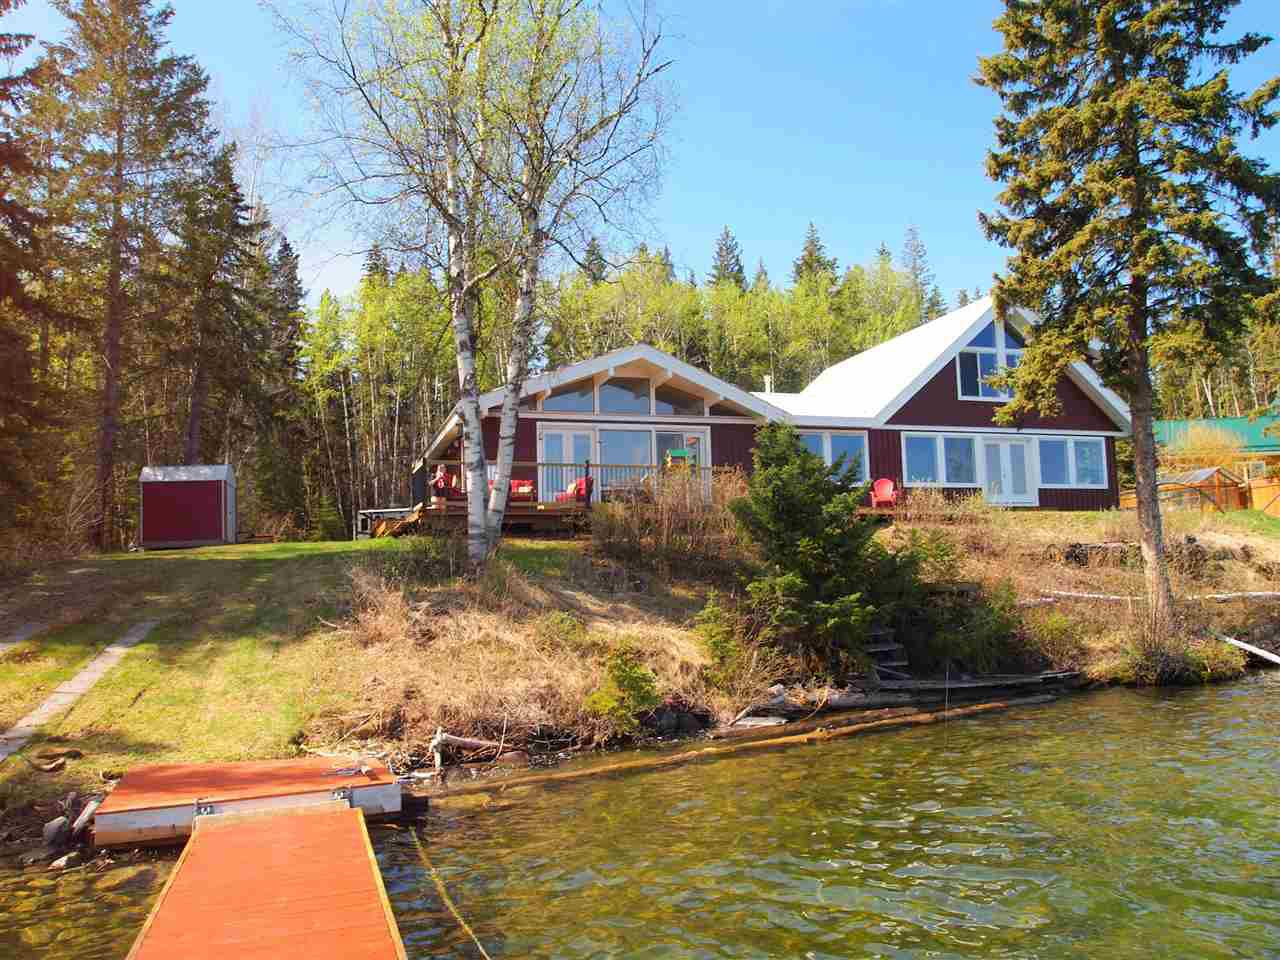 Main Photo: 4695 CAVERLY Road: Lac la Hache House for sale (100 Mile House (Zone 10))  : MLS®# R2369701